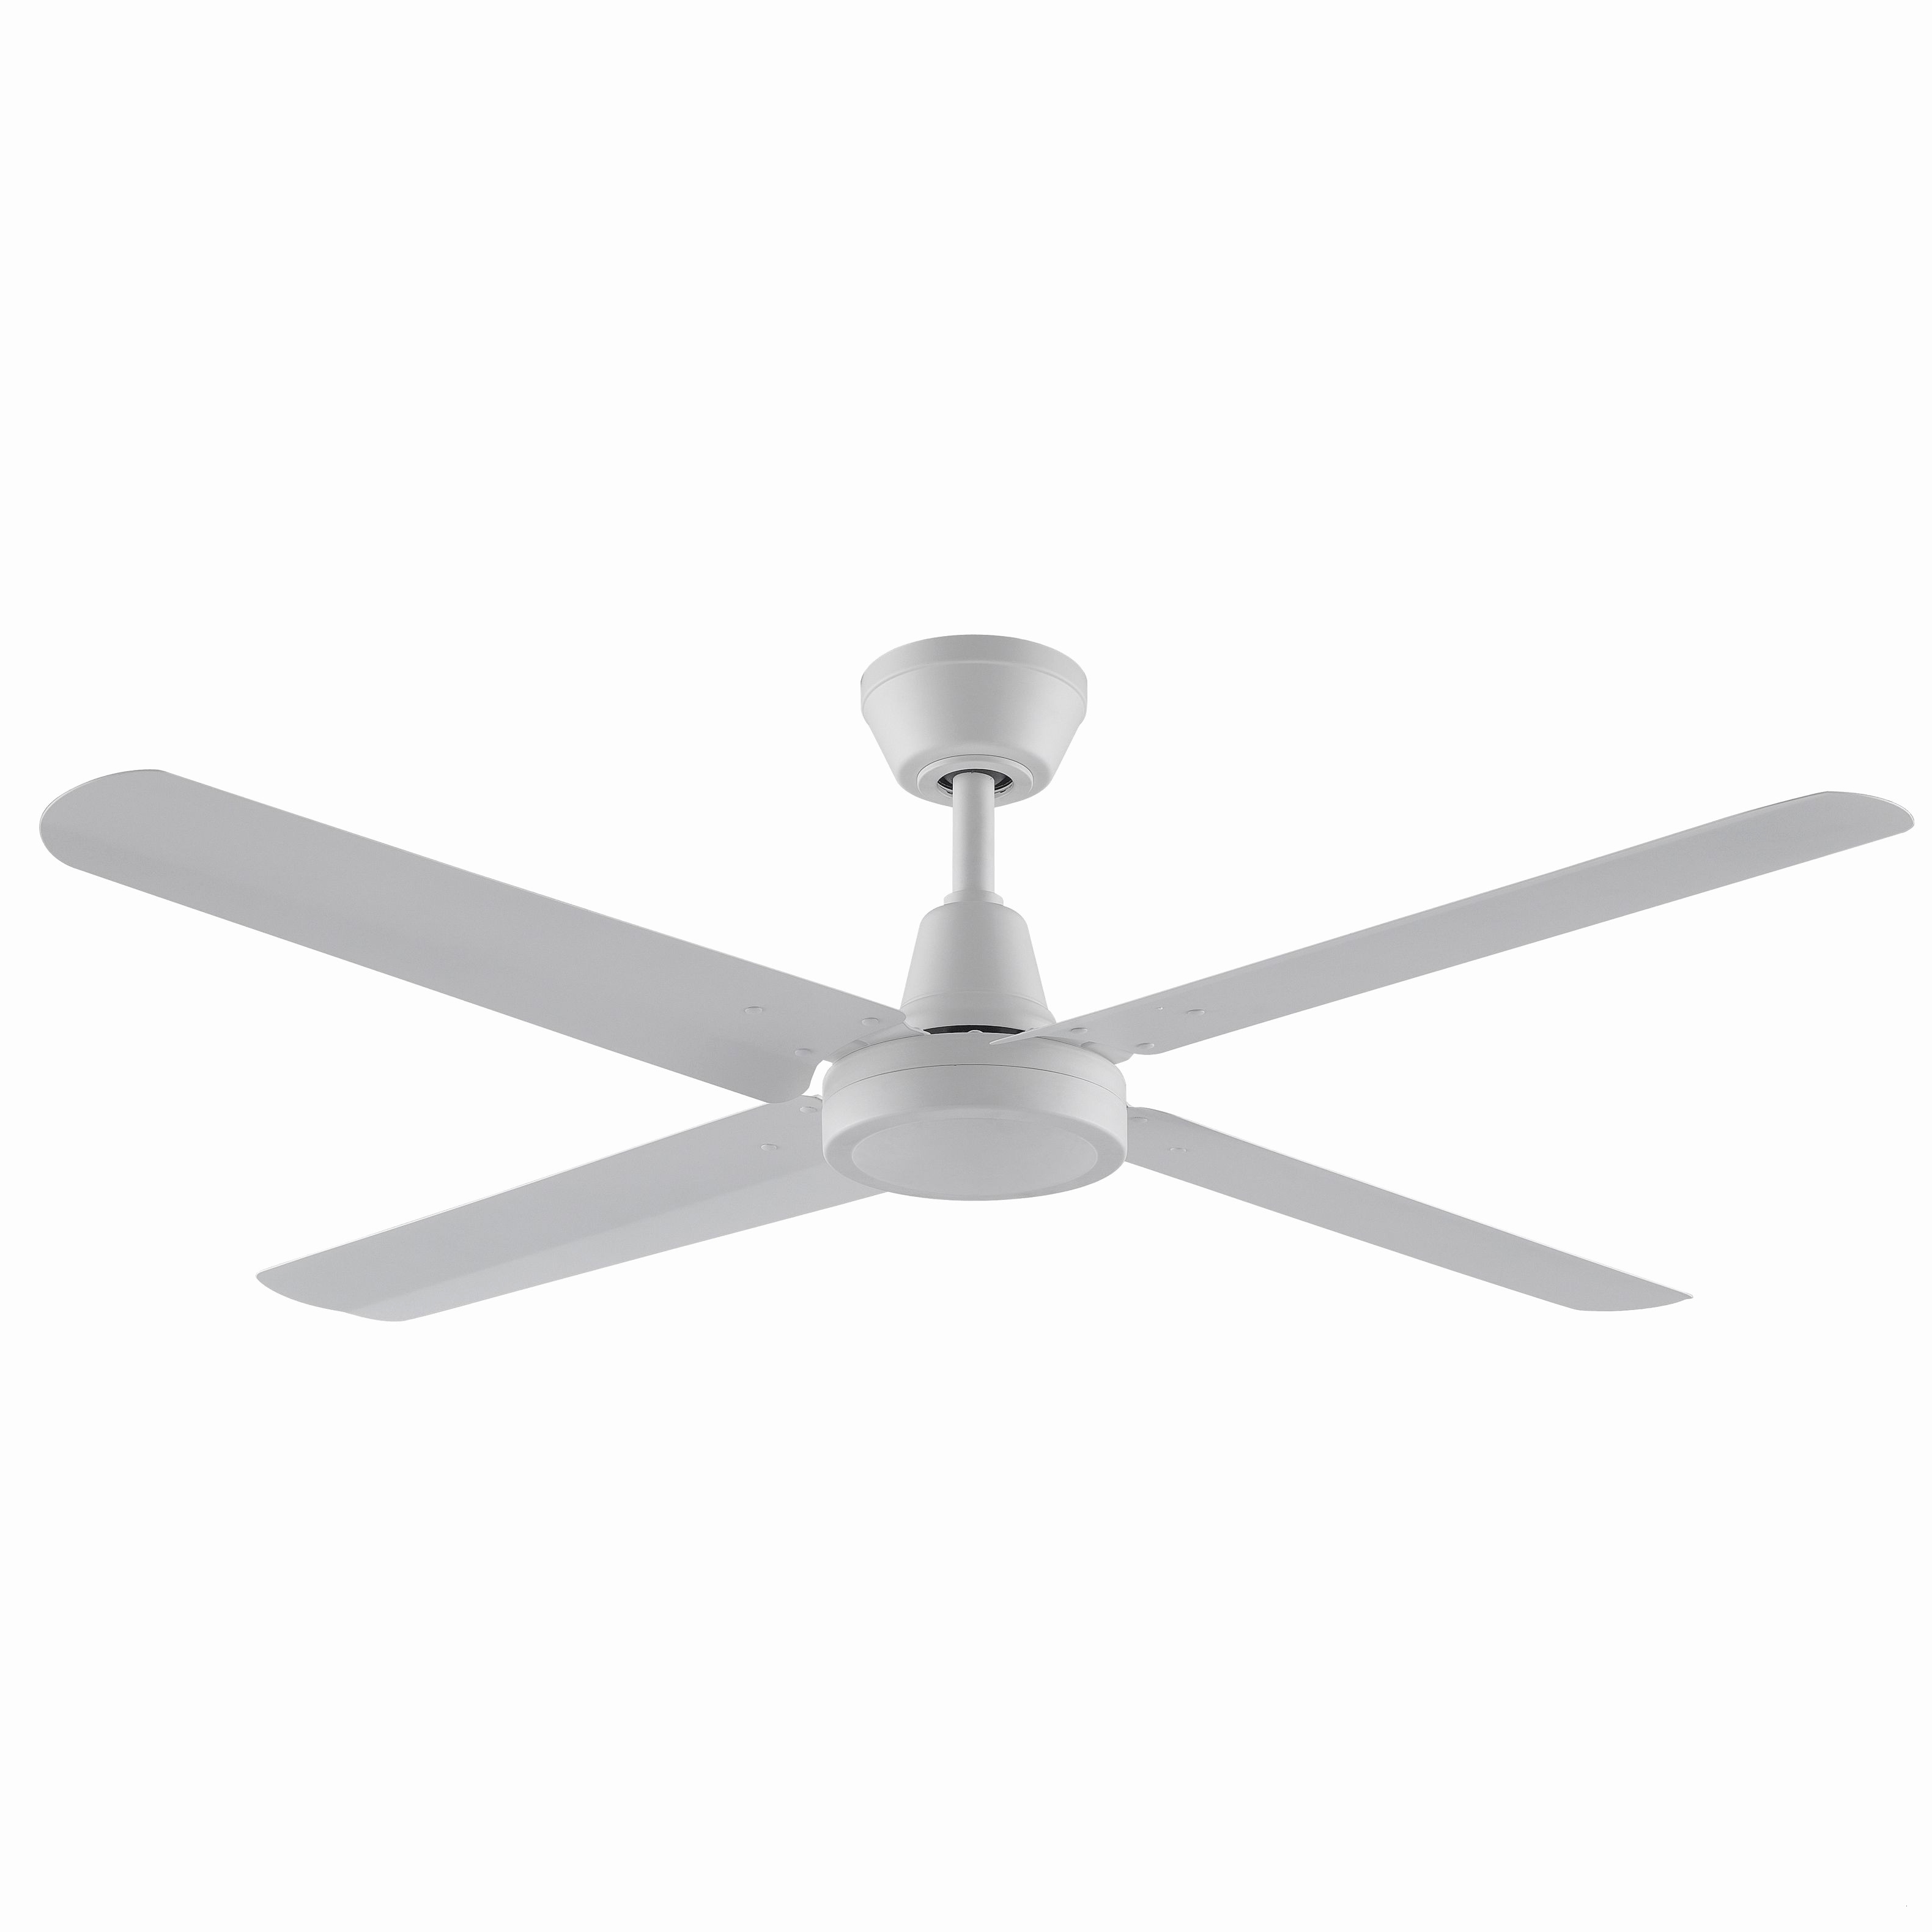 Lowes Outdoor Ceiling Fans With Lights Elegant Lowes Outdoor Ceiling Pertaining To Popular Elegant Outdoor Ceiling Fans (View 15 of 20)